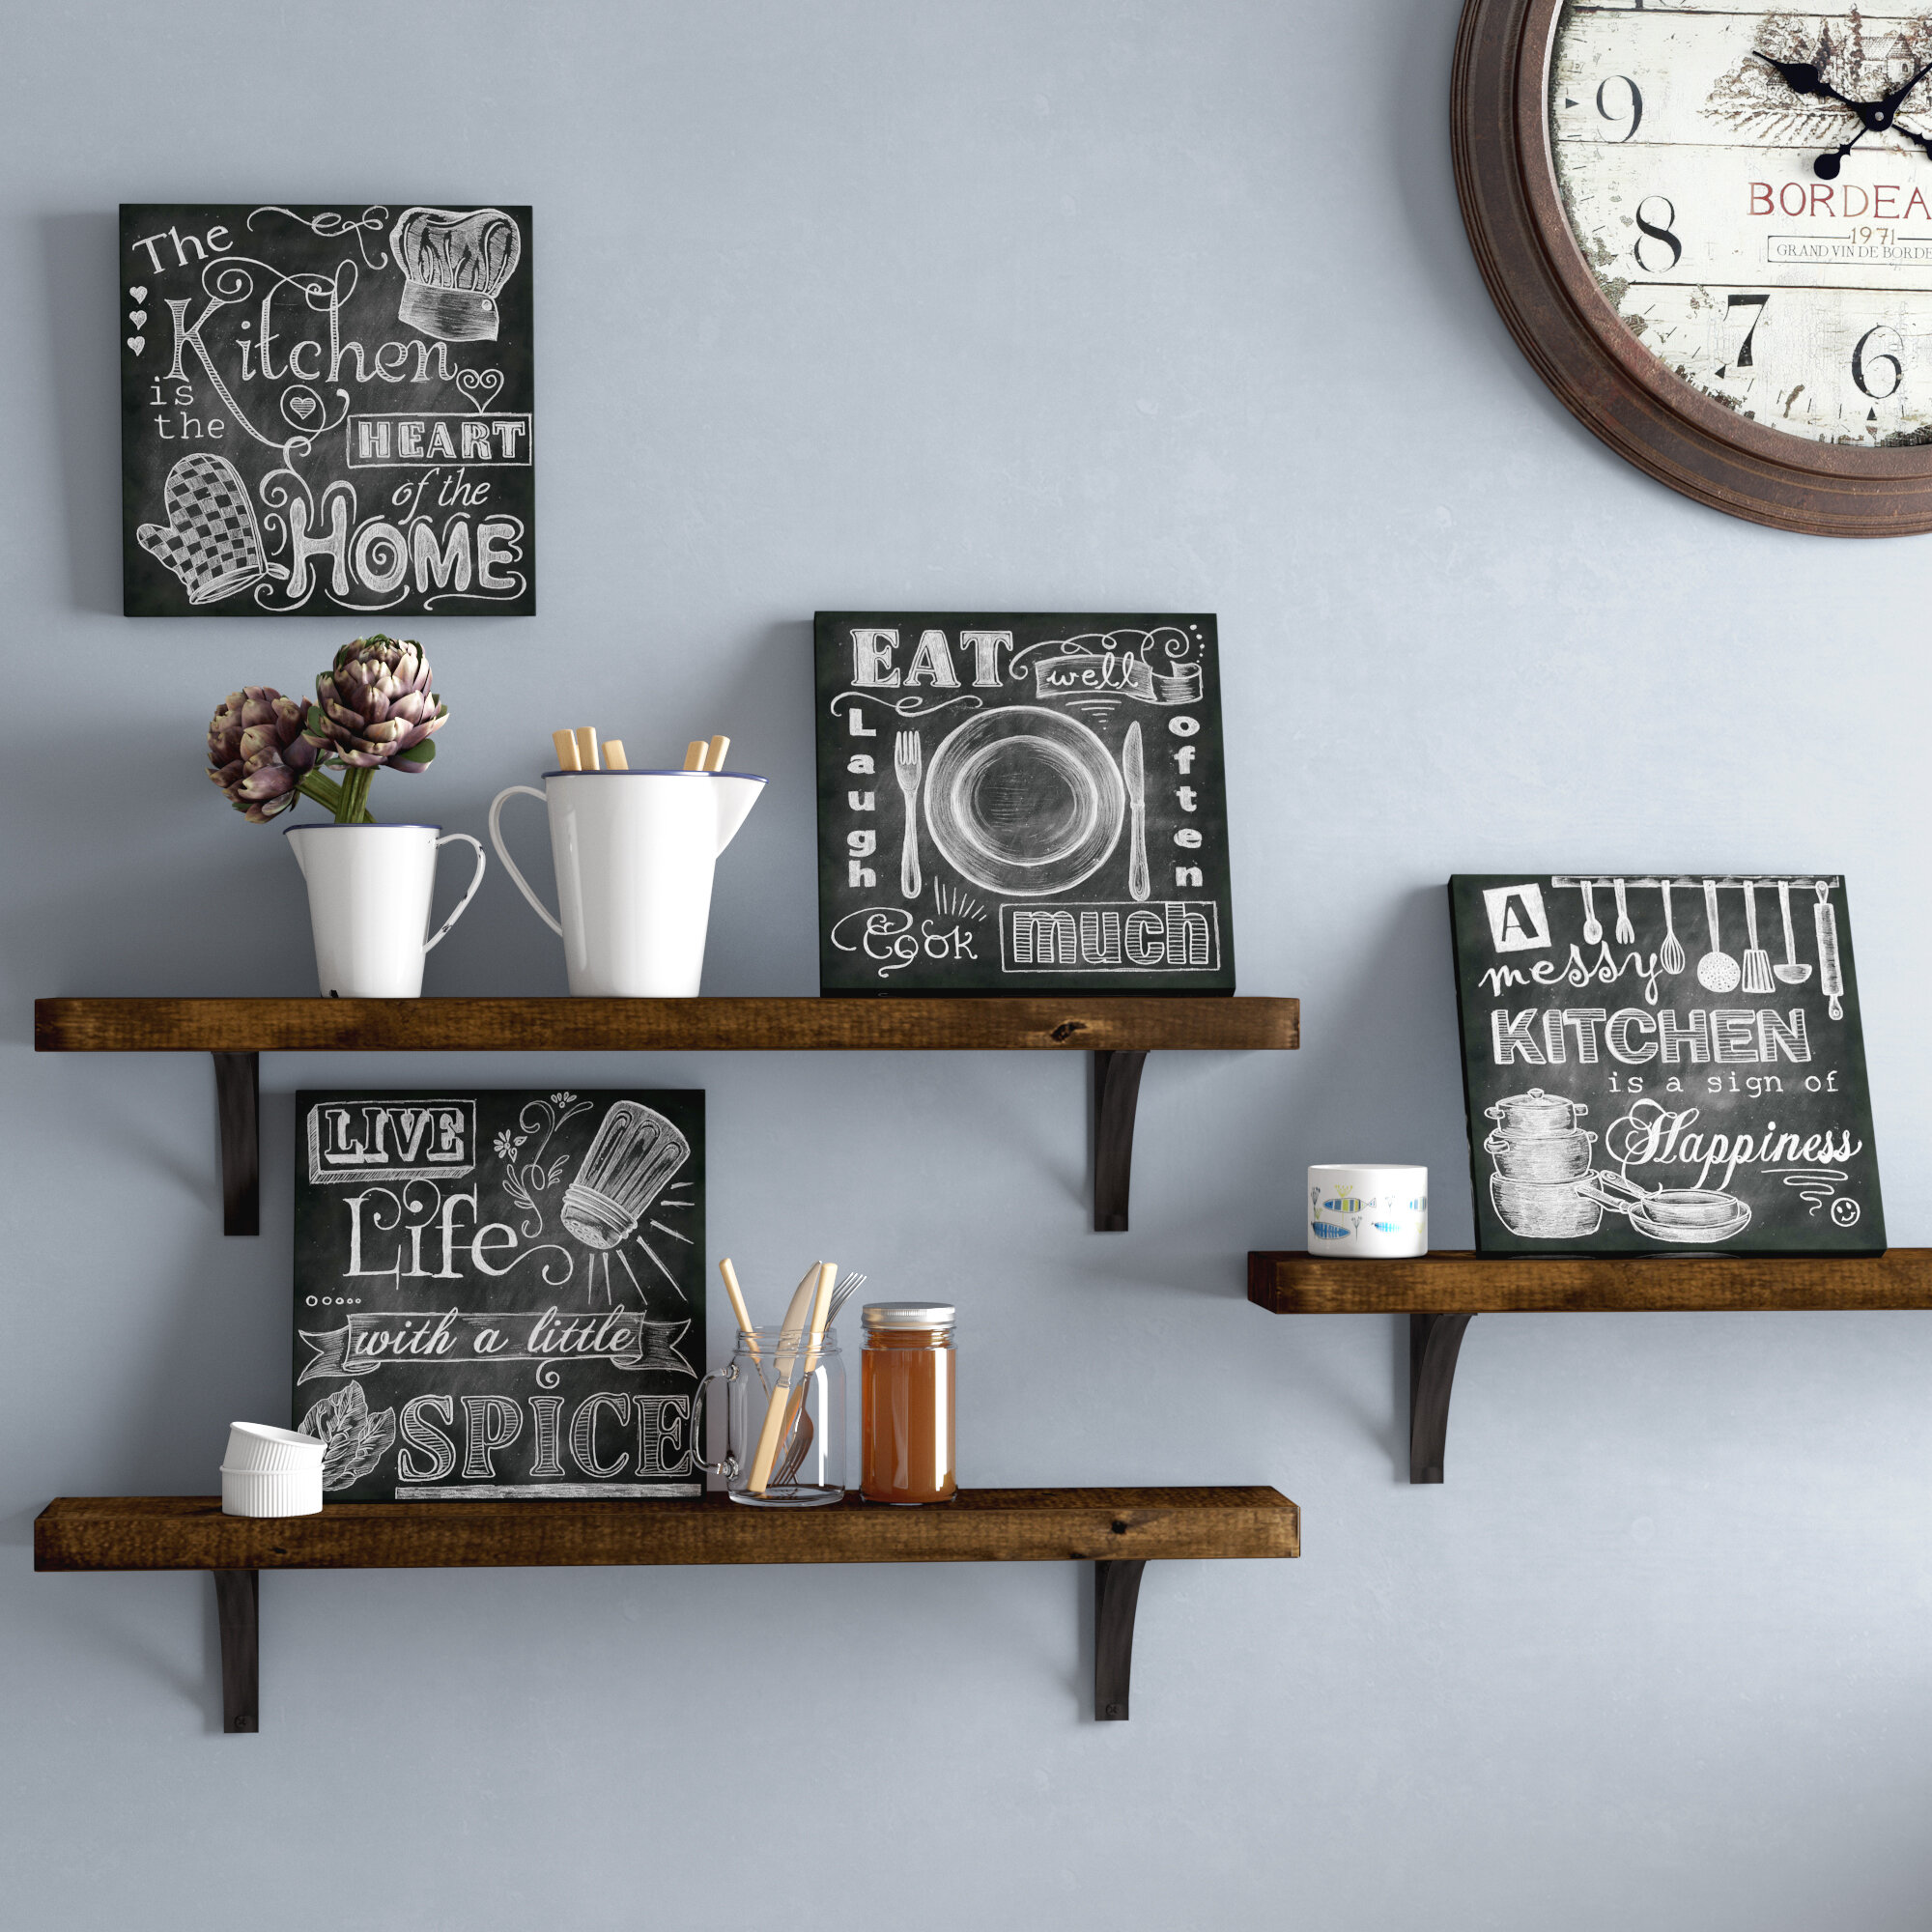 Darby Home Co Beautiful Fun Chalkboard Kitchen Signs Messy Heart Of The Spice Life And Cook Much 4 Piece Picture Frame Textual Art Print Set Reviews Wayfair